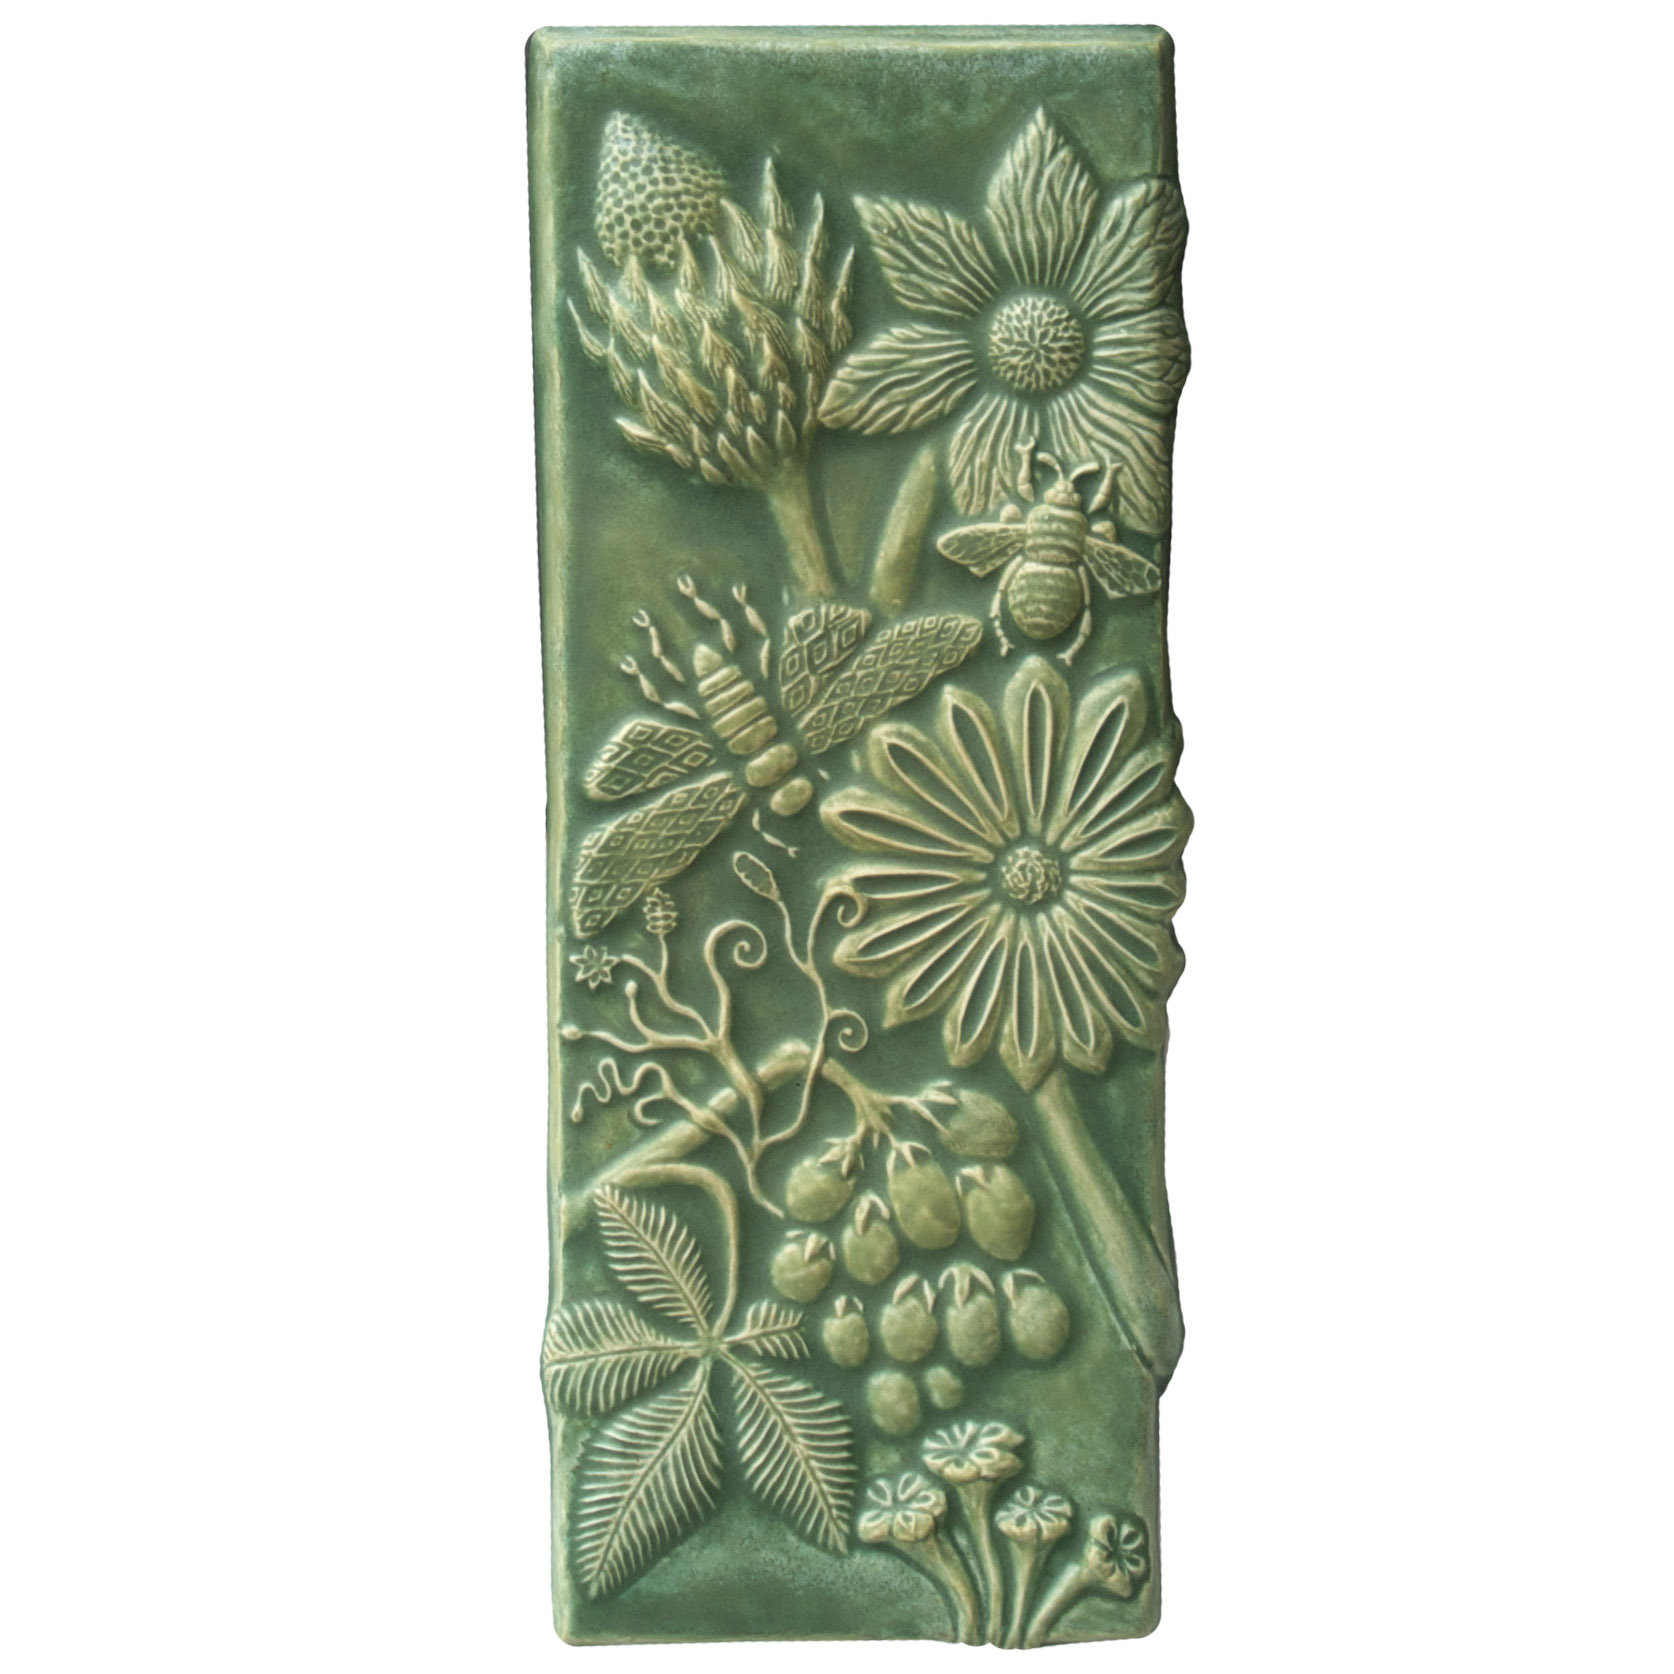 Botanical Tall Ceramic Tile In Patina Glaze By Beth